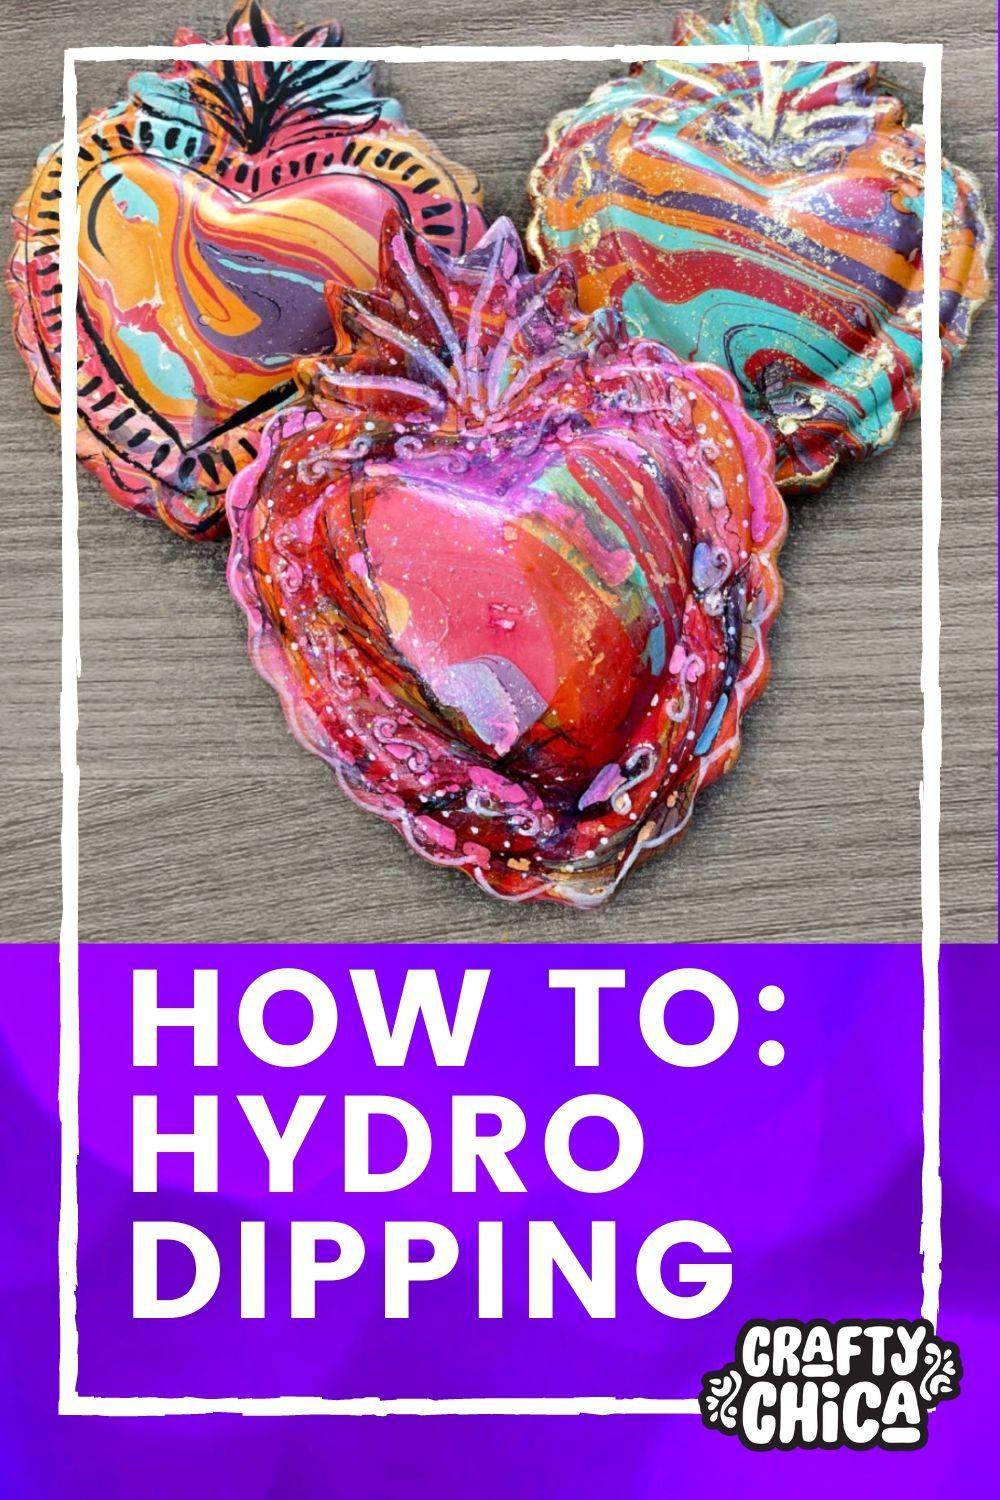 Easy hydro dipping DIY to try! #craftychica #hydrodippingdiy